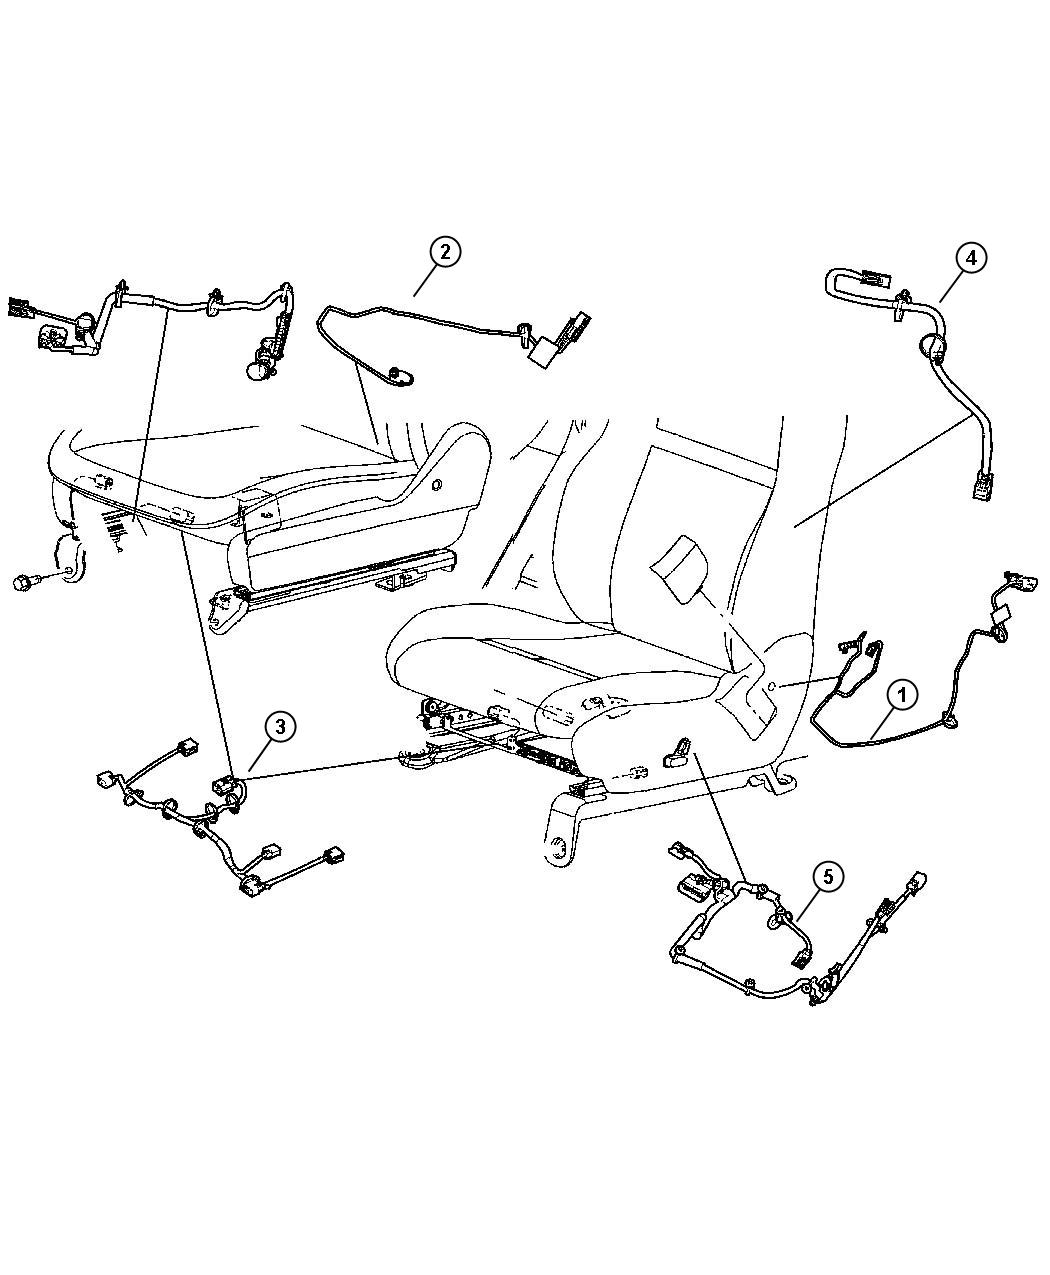 Jeep Grand Cherokee Wiring. Seat. Manual, tagged 1478991